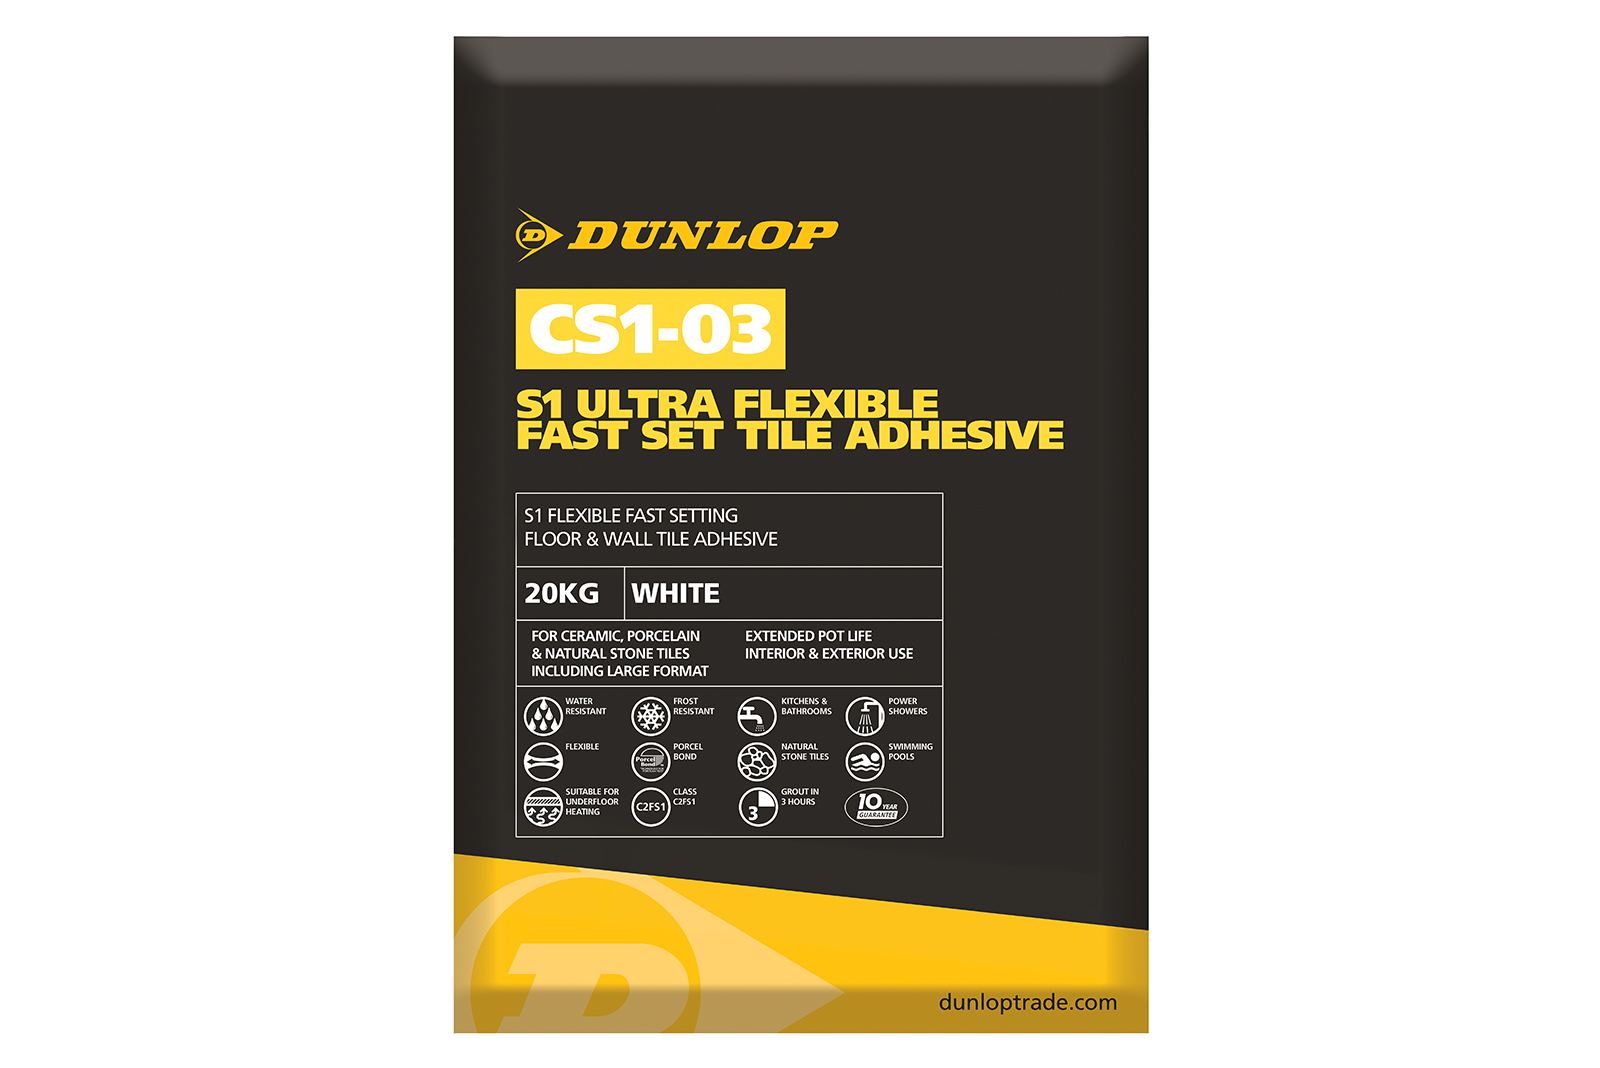 20 Bags of Dunlop's 20KG Adhesive to WIN